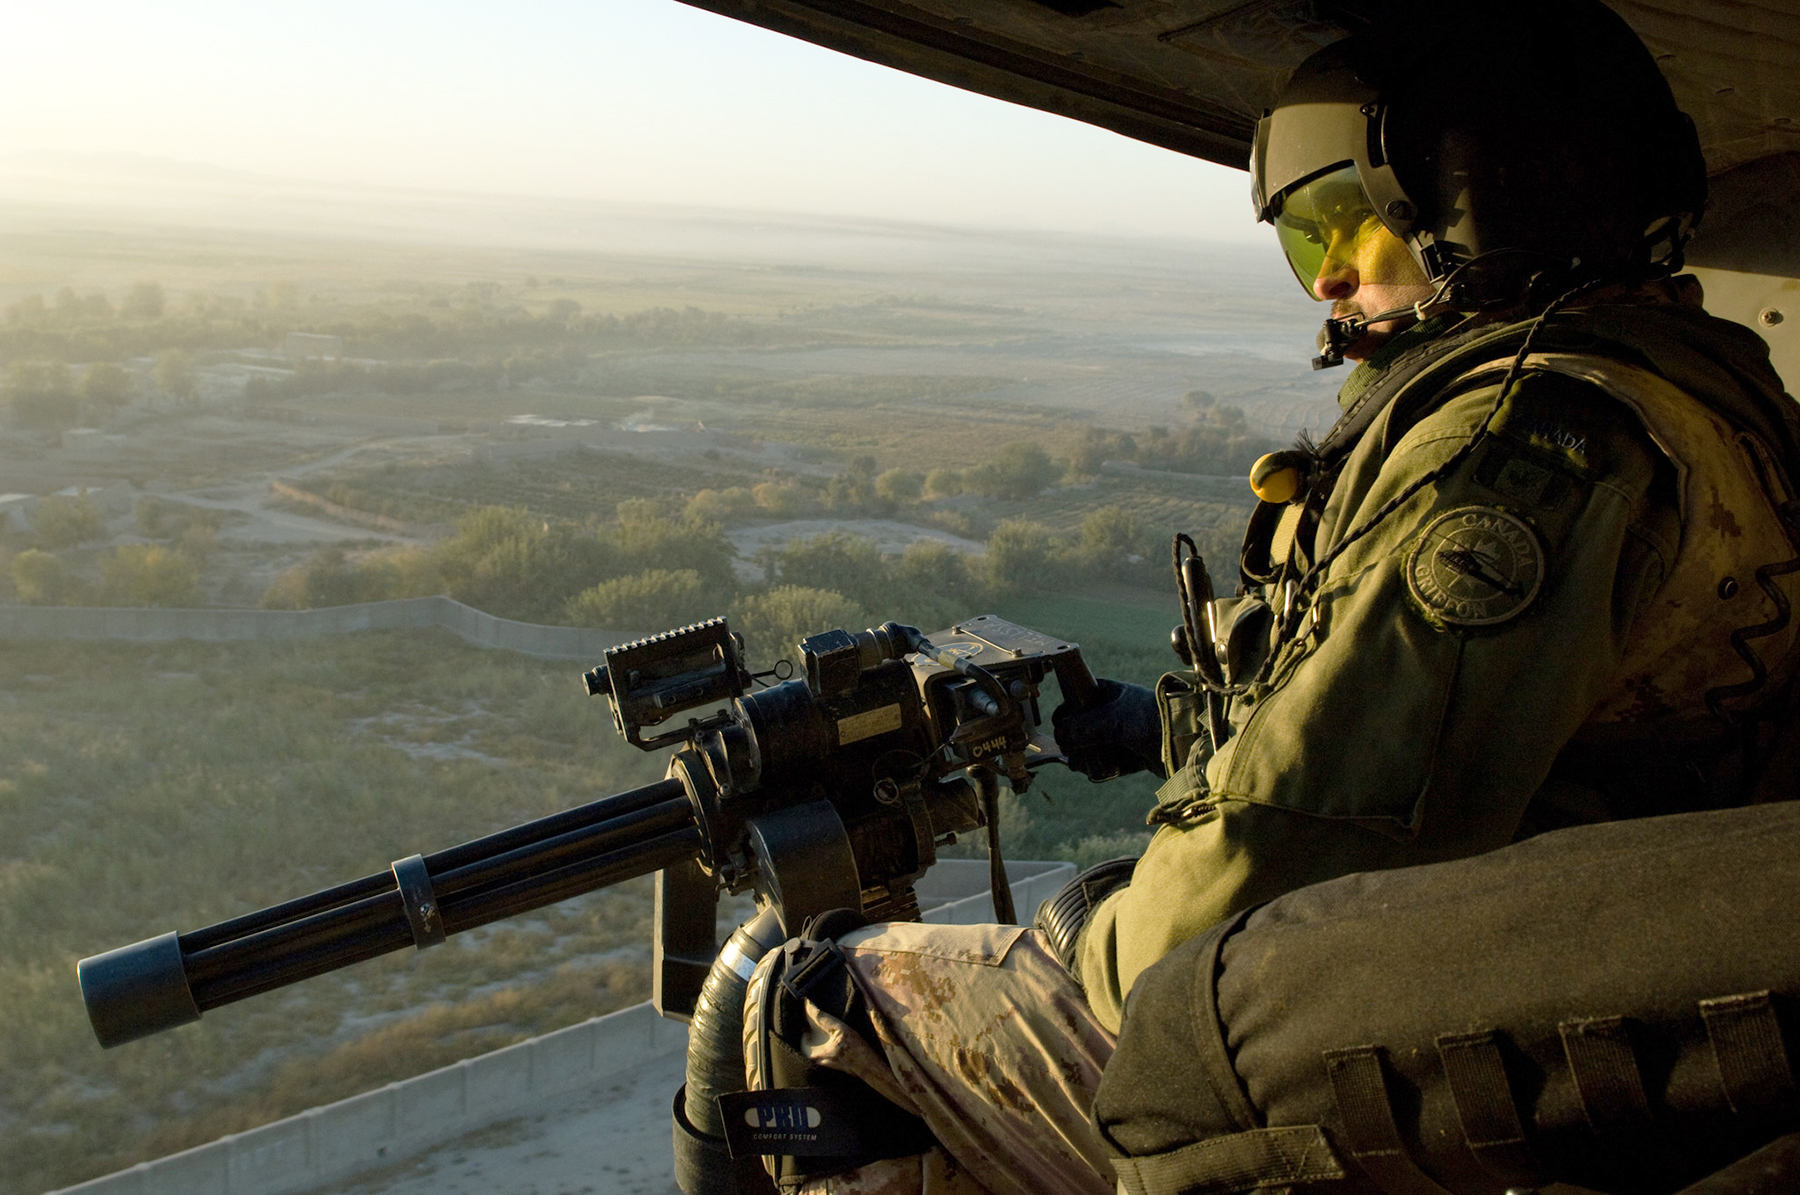 On October 13, 2009, during Roto 8 of Joint Task Force Afghanistan, flight engineer Corporal Steve J. Laing mans a Dillion 7.62mm M134 Minigun mounted on the side of a CH-146 Griffon helicopter during an early morning operation. PHOTO: Master Corporal Matthew McGregor, AR2009-0002-09